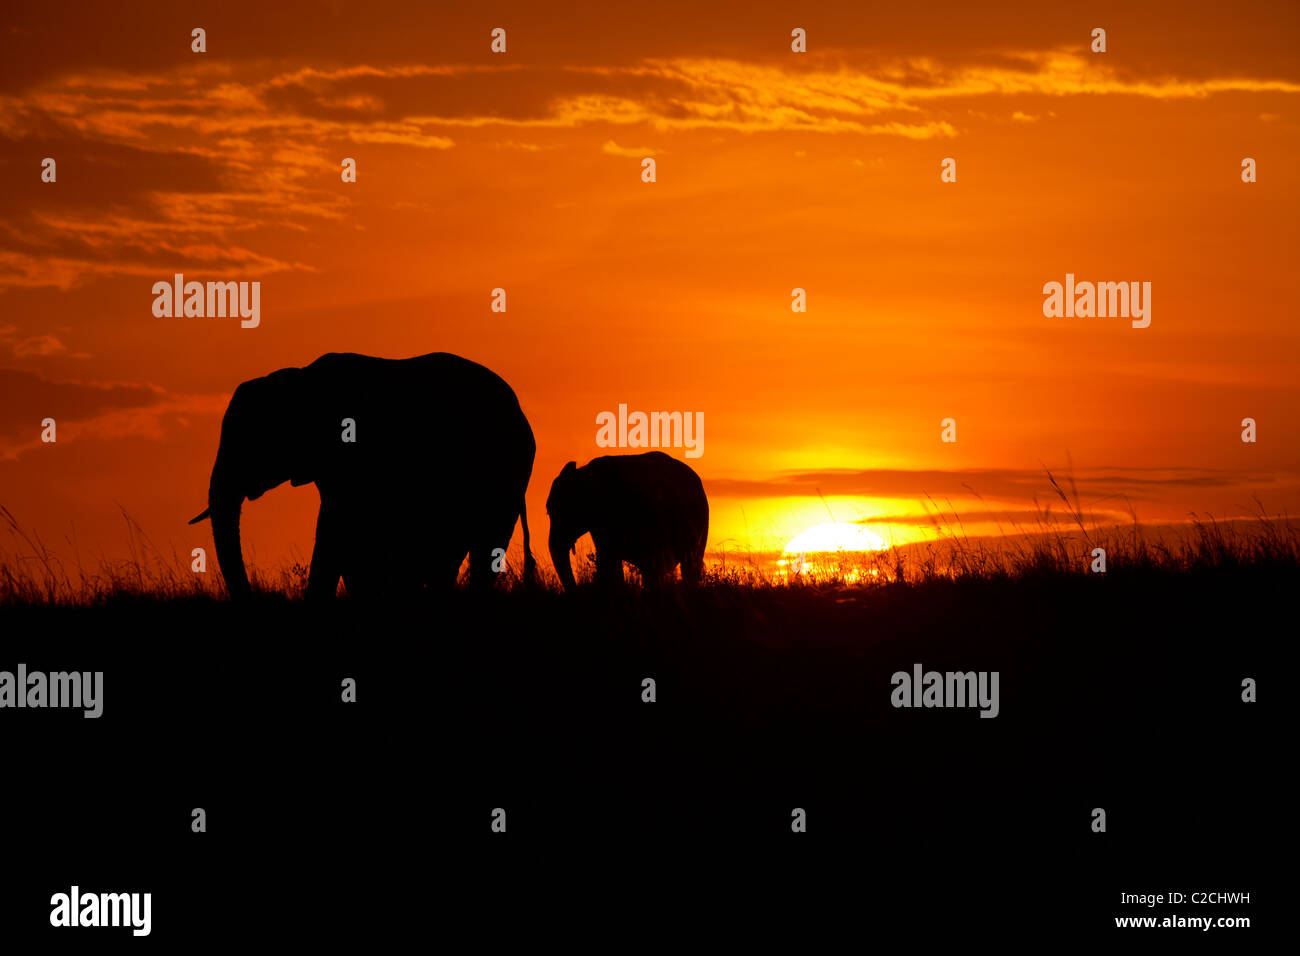 African elephants silhouetted in sunset - Stock Image